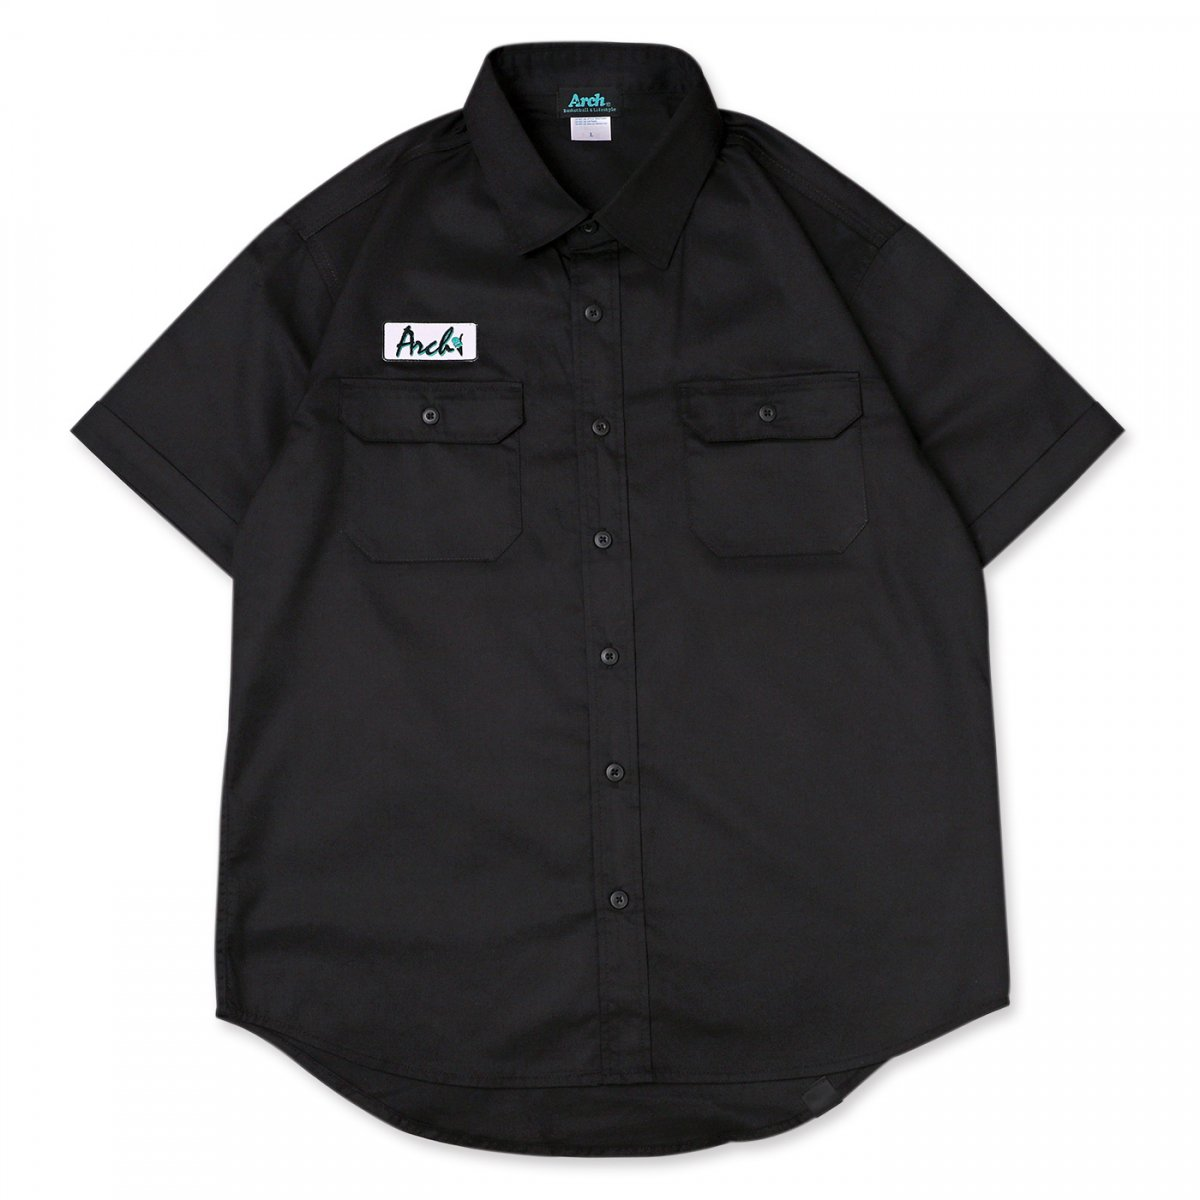 ice patch work shirt 【black】